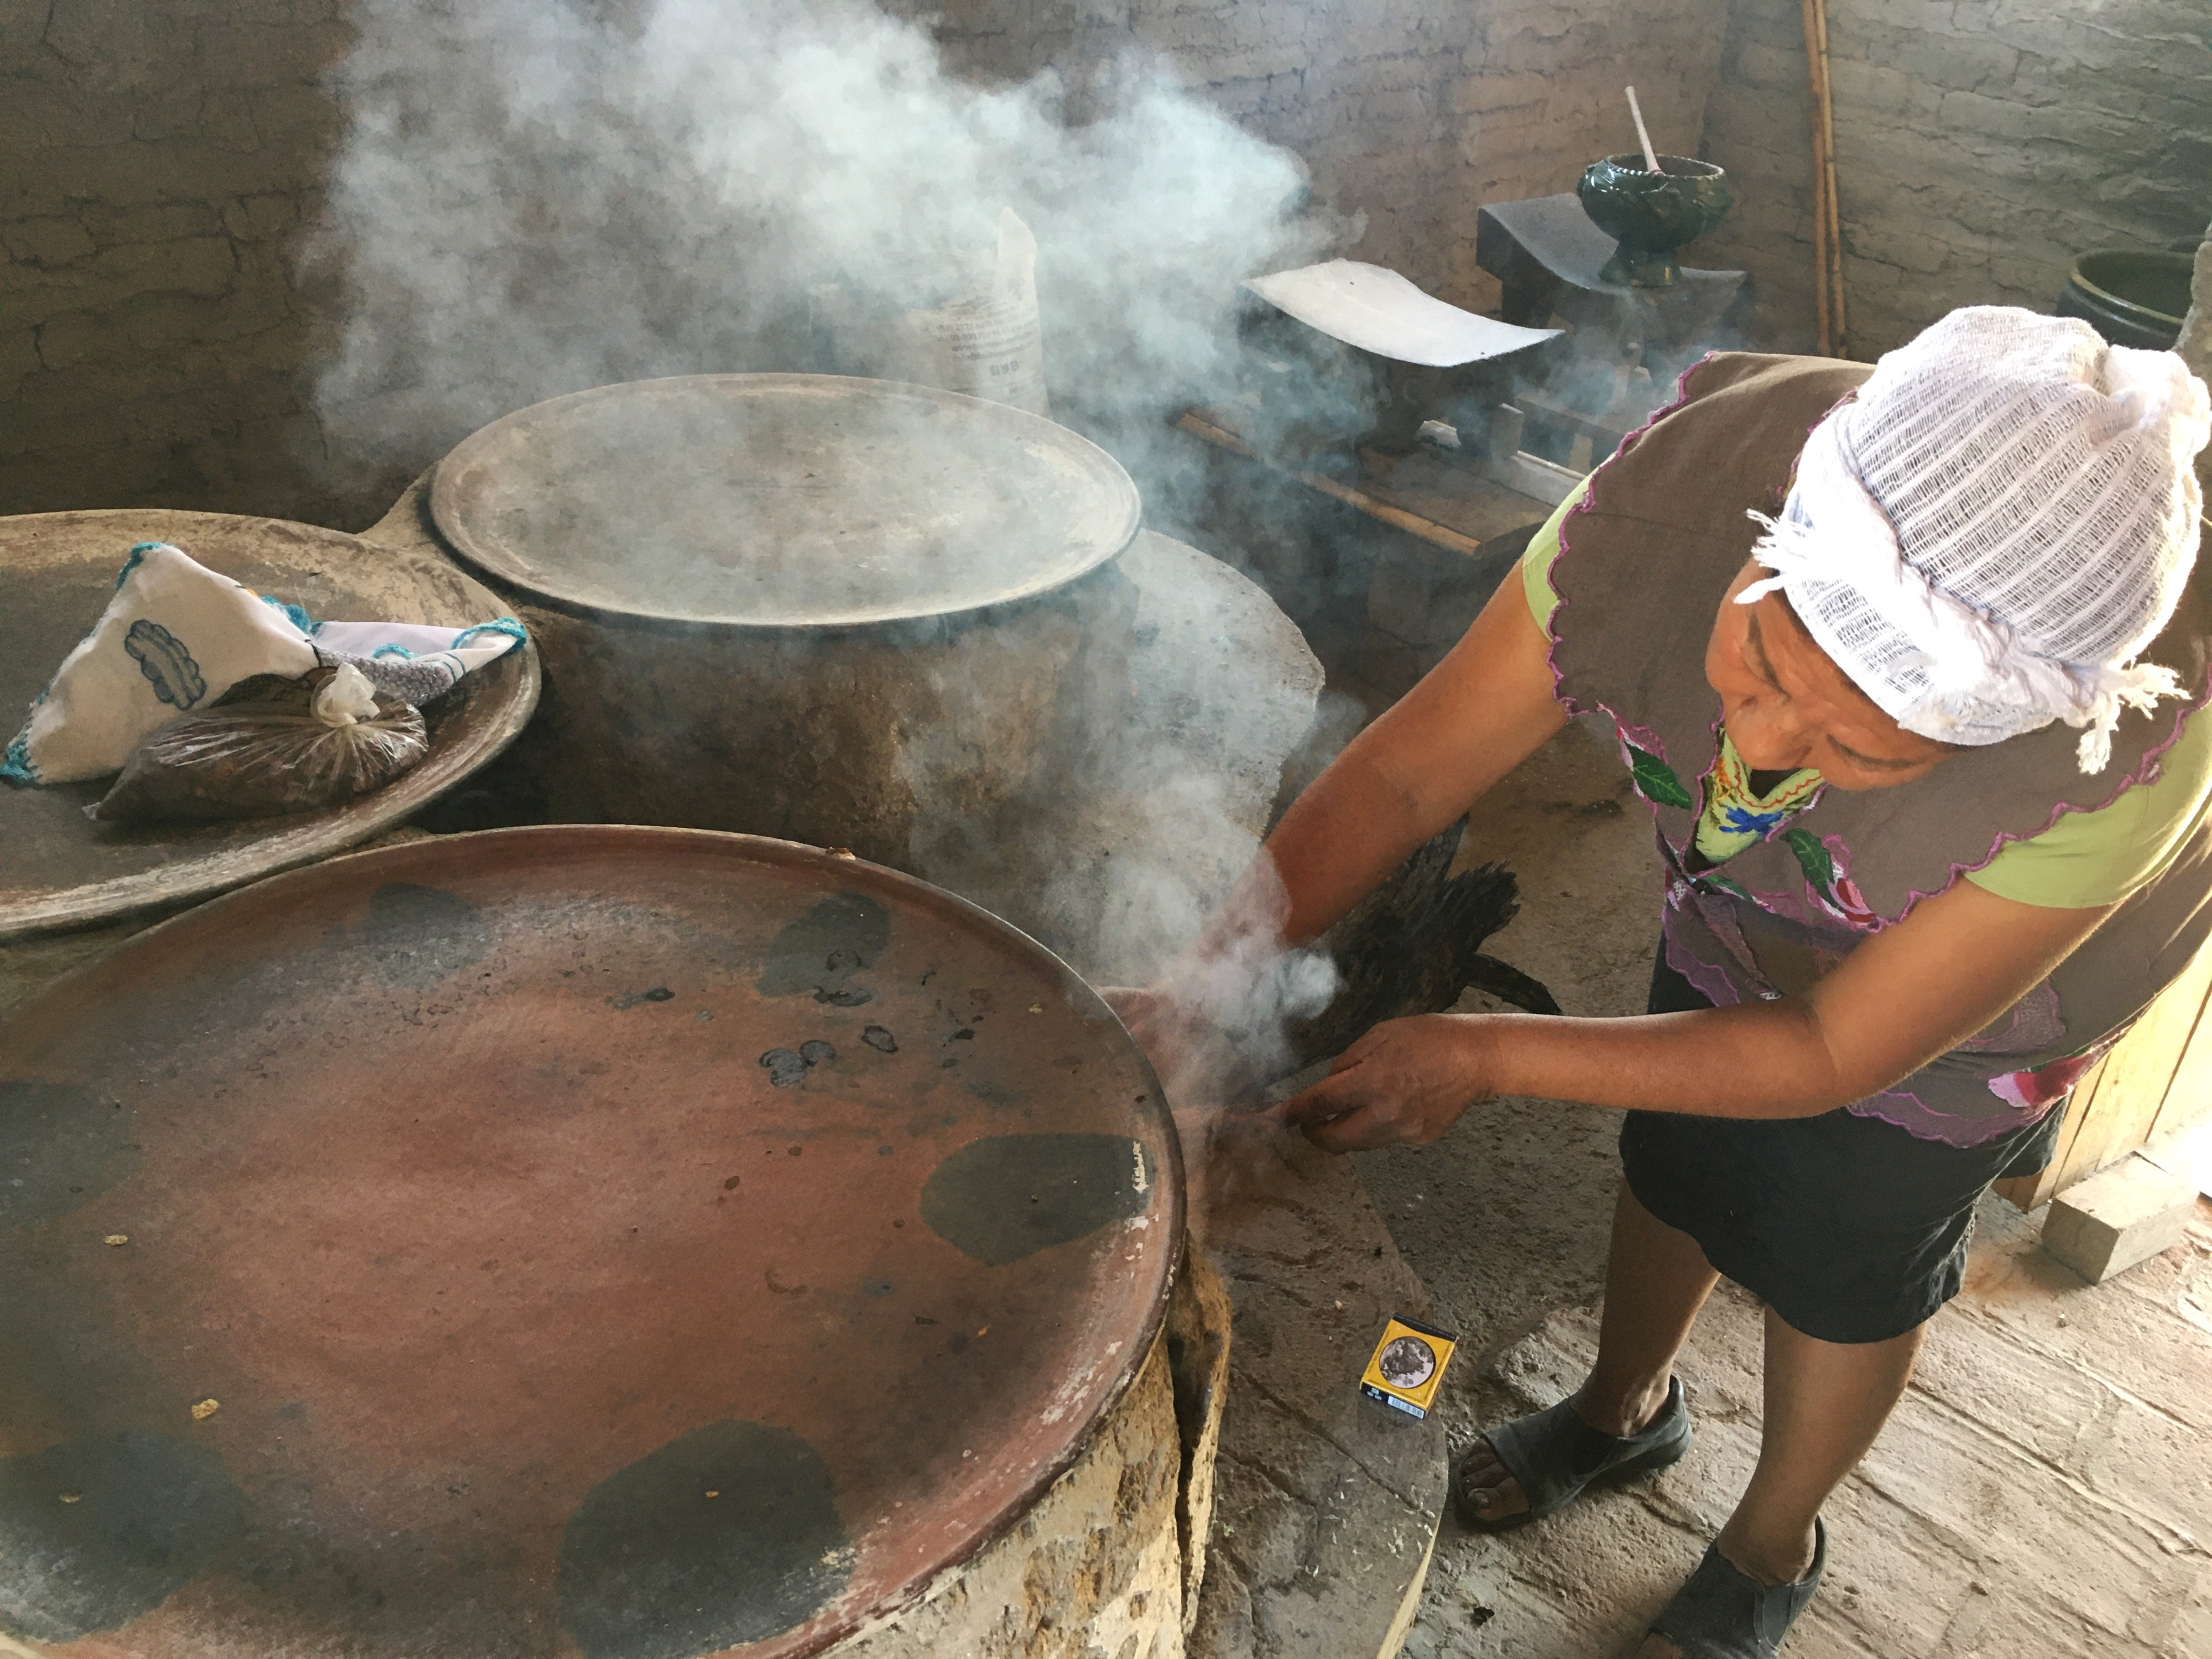 A woman prepares to roast cocoa beans at her chocolate factory, Lanní Chocolate, in Oaxaca, Mexico.